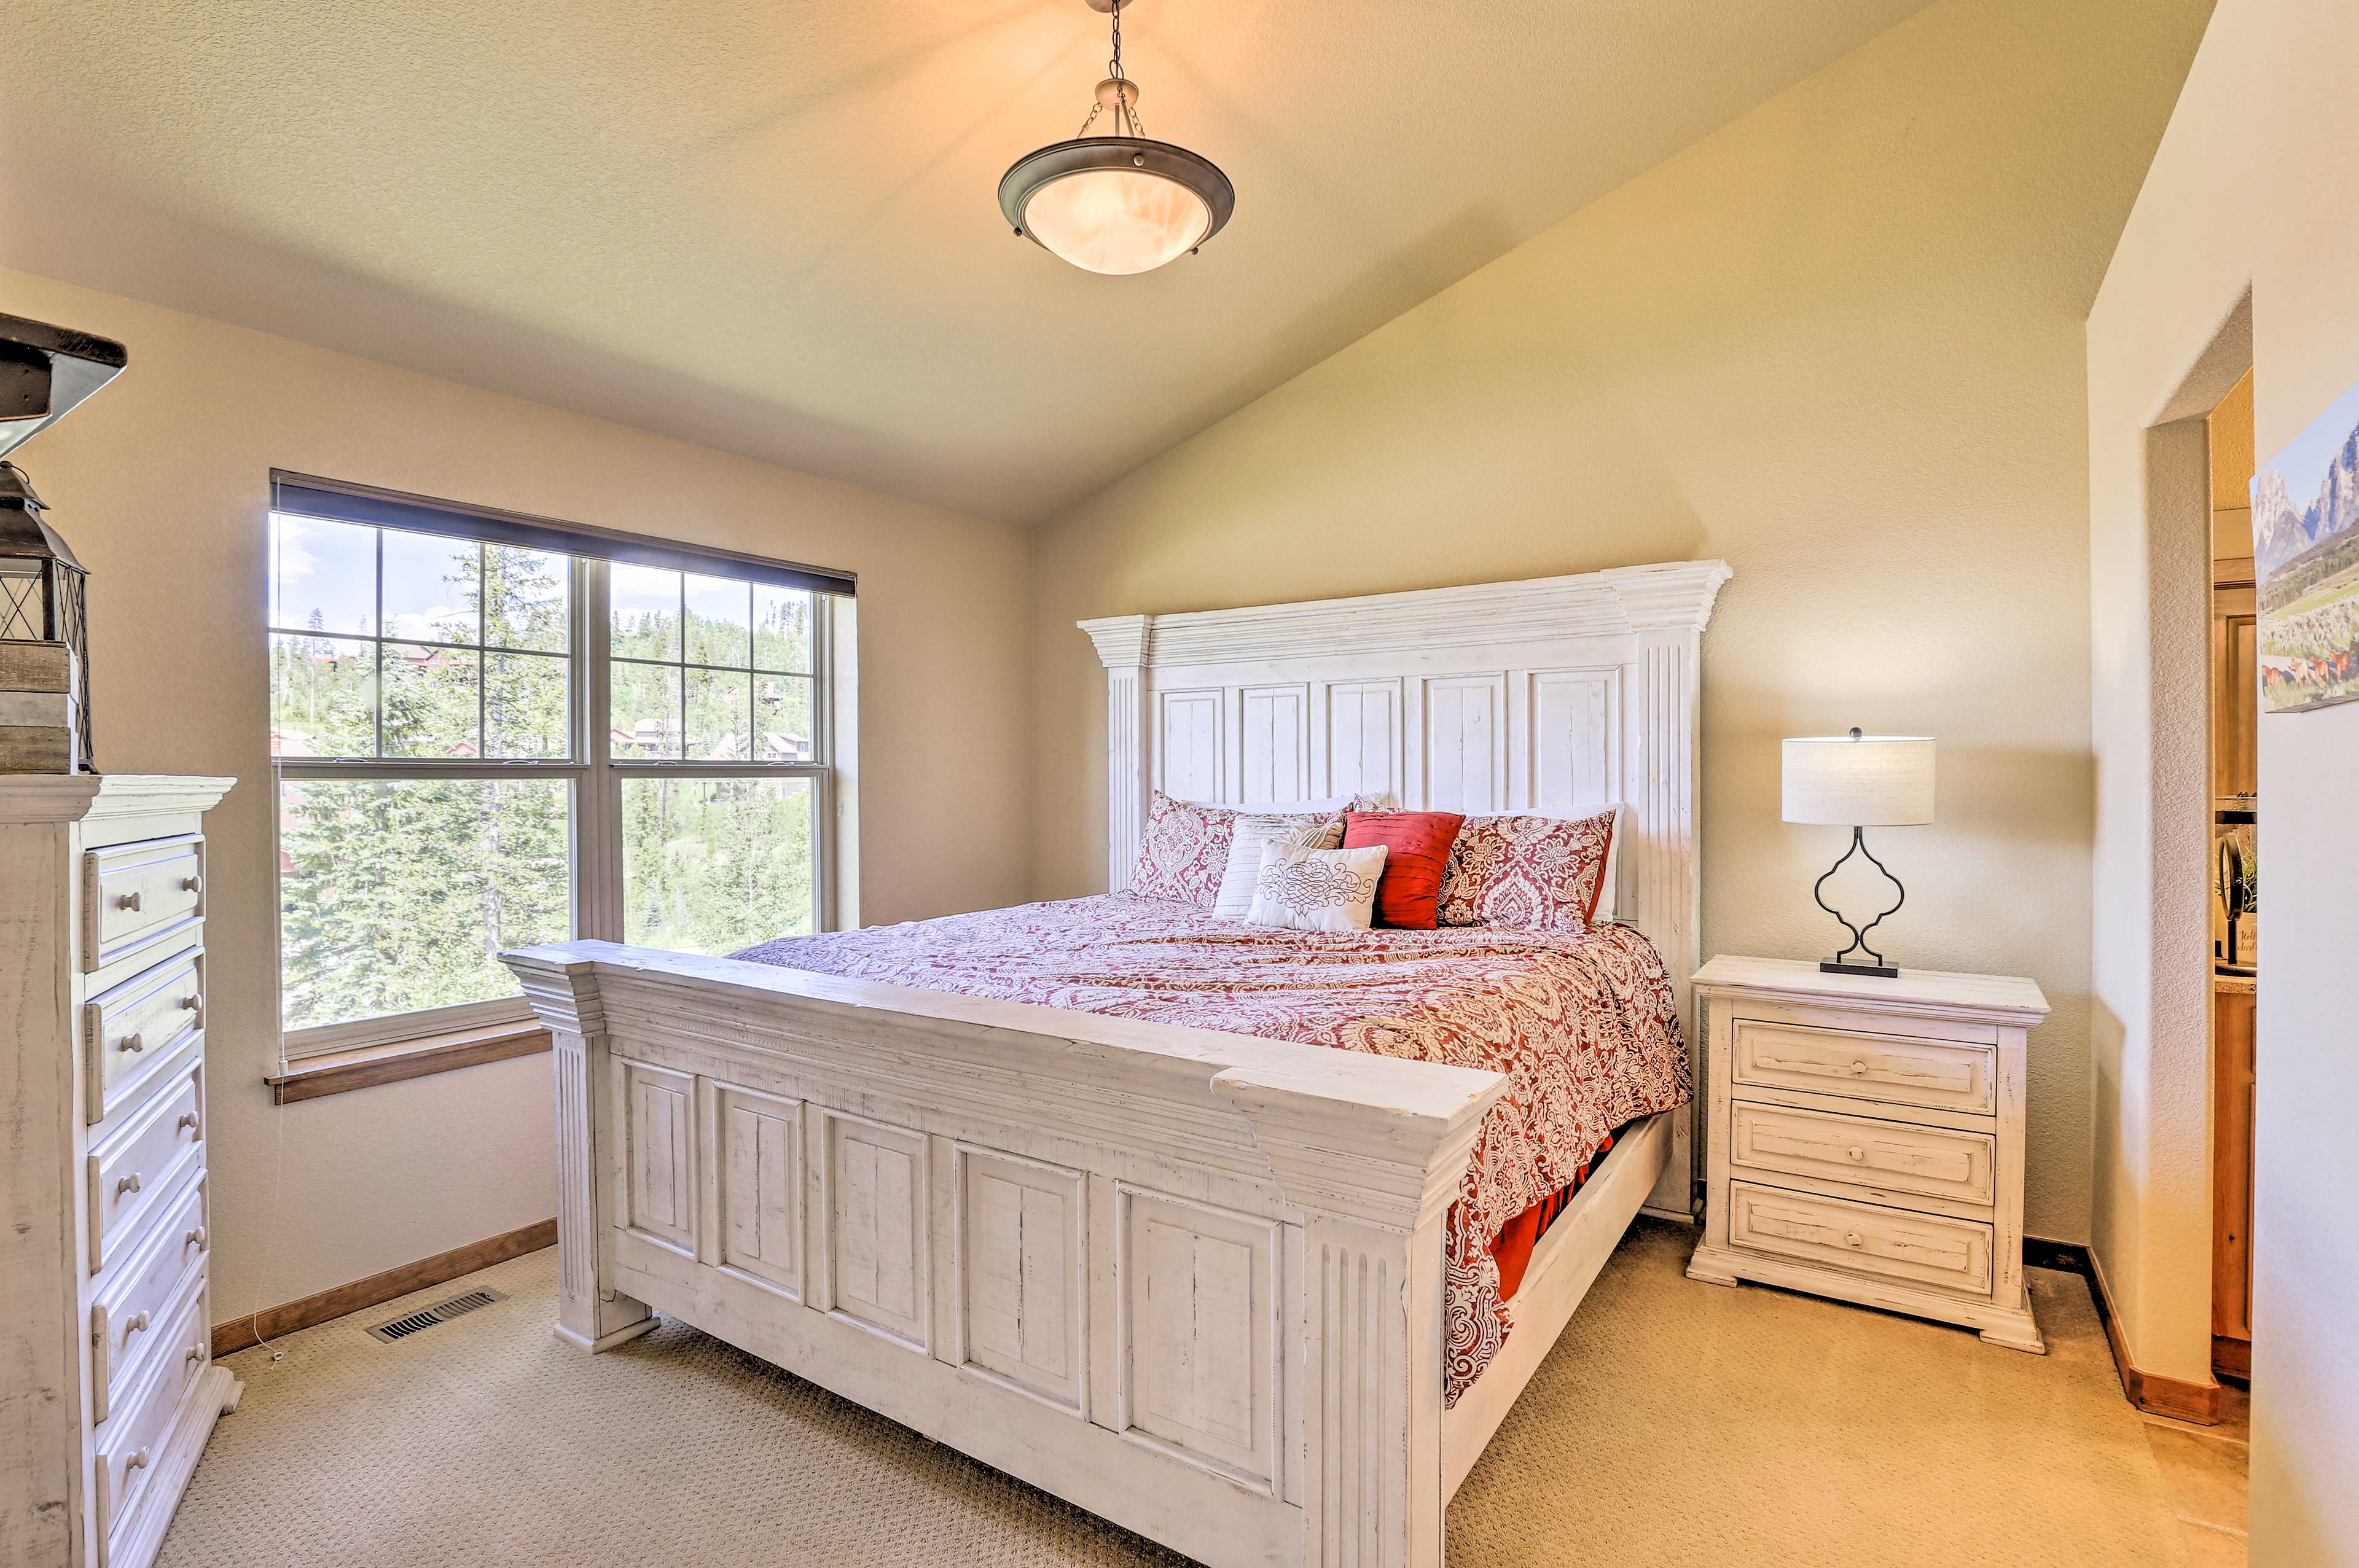 Curl up under the covers of this king-sized bed in the master bedroom!